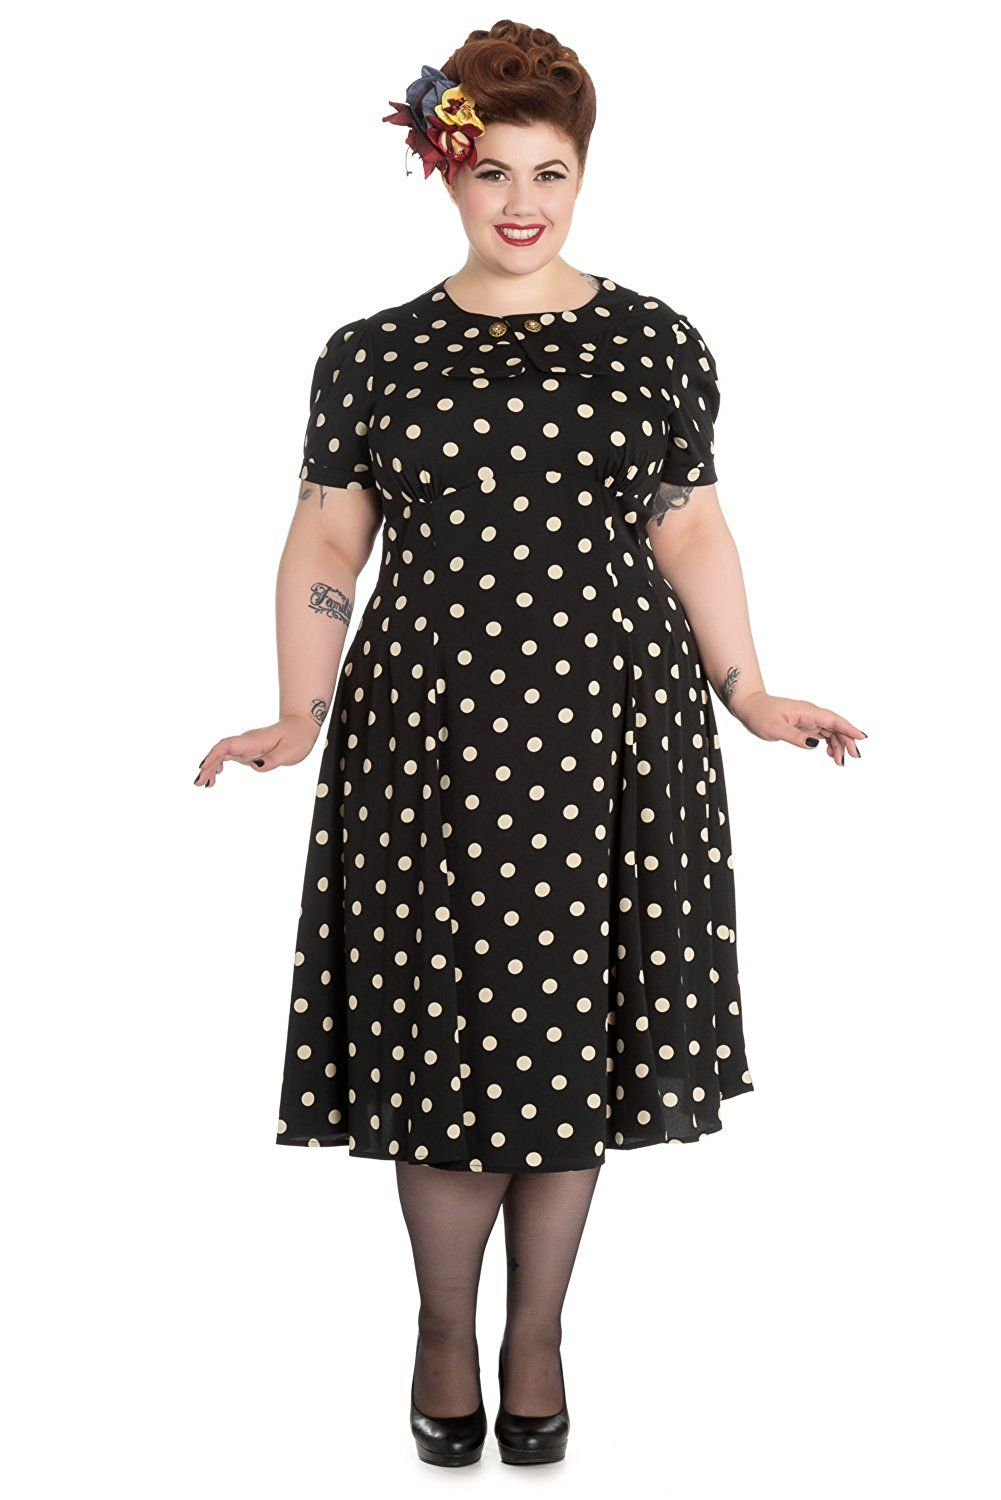 Vintage Style Dresses: 30s, 40s, 50s, and 60s ...